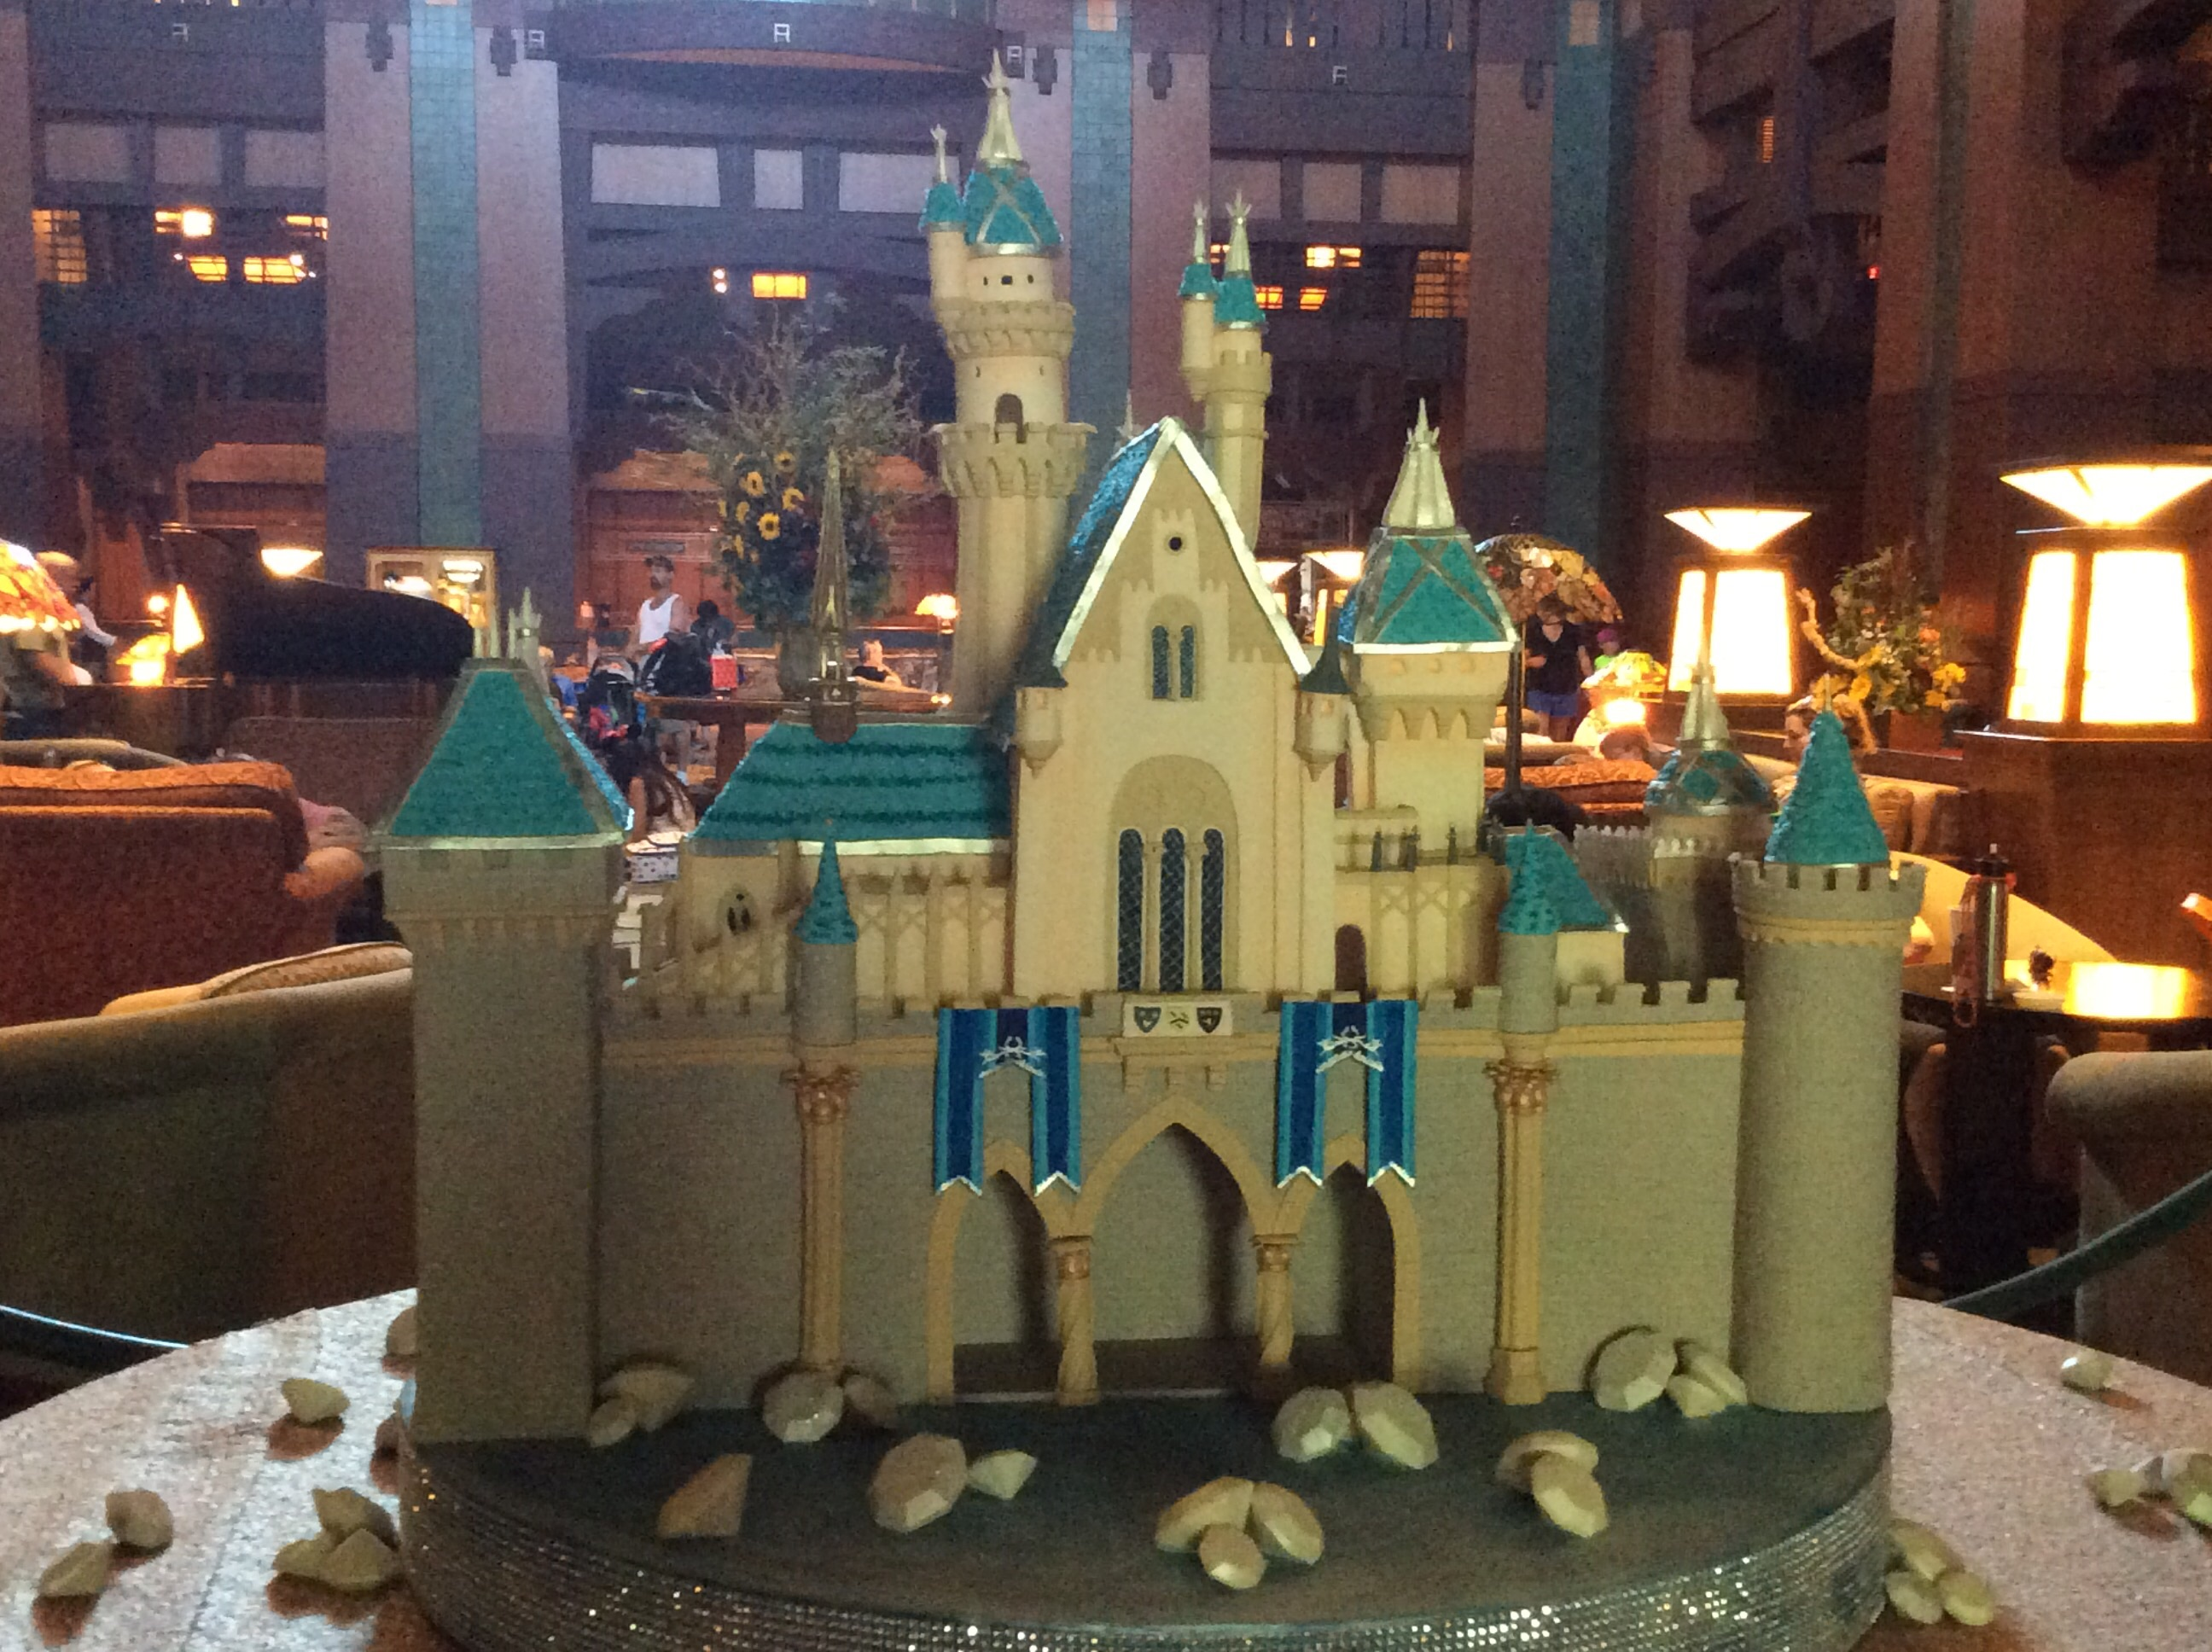 grand californian photo essay cake in shape of sleeping beauty s disneyland castle in lobby of the grand californian hotel at disneyland